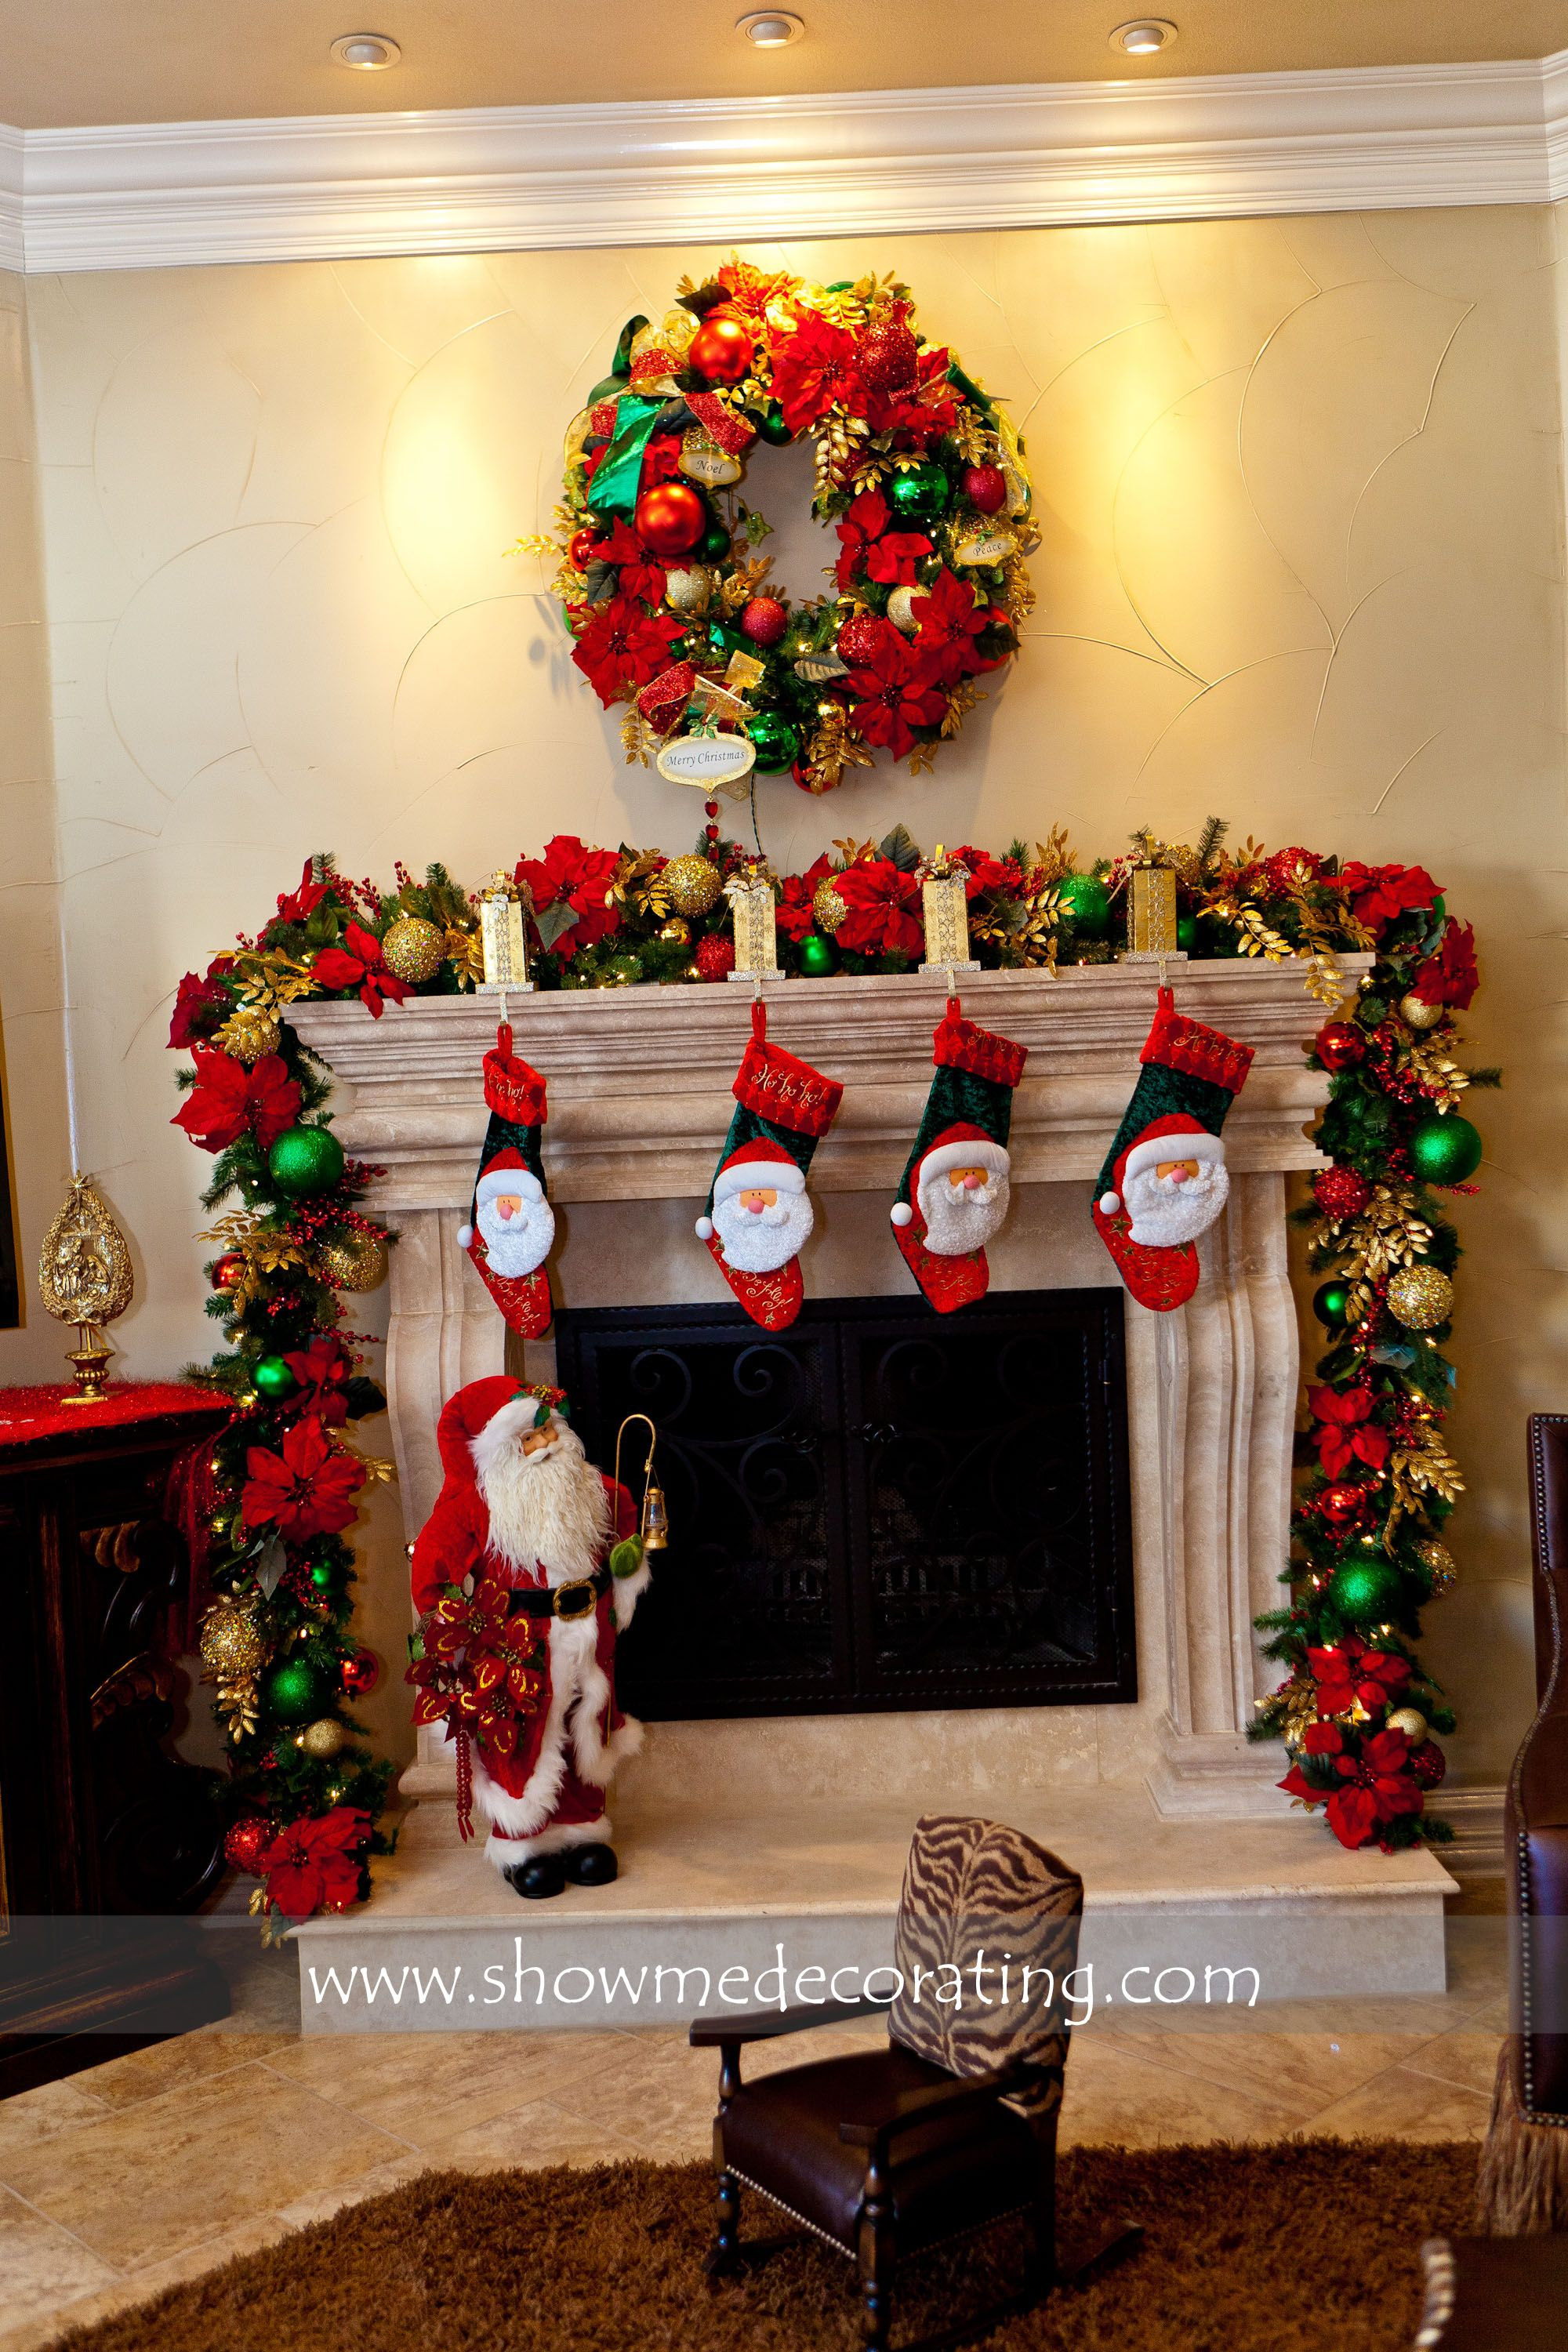 The stockings were hung by the chimney with care A fun Christmas